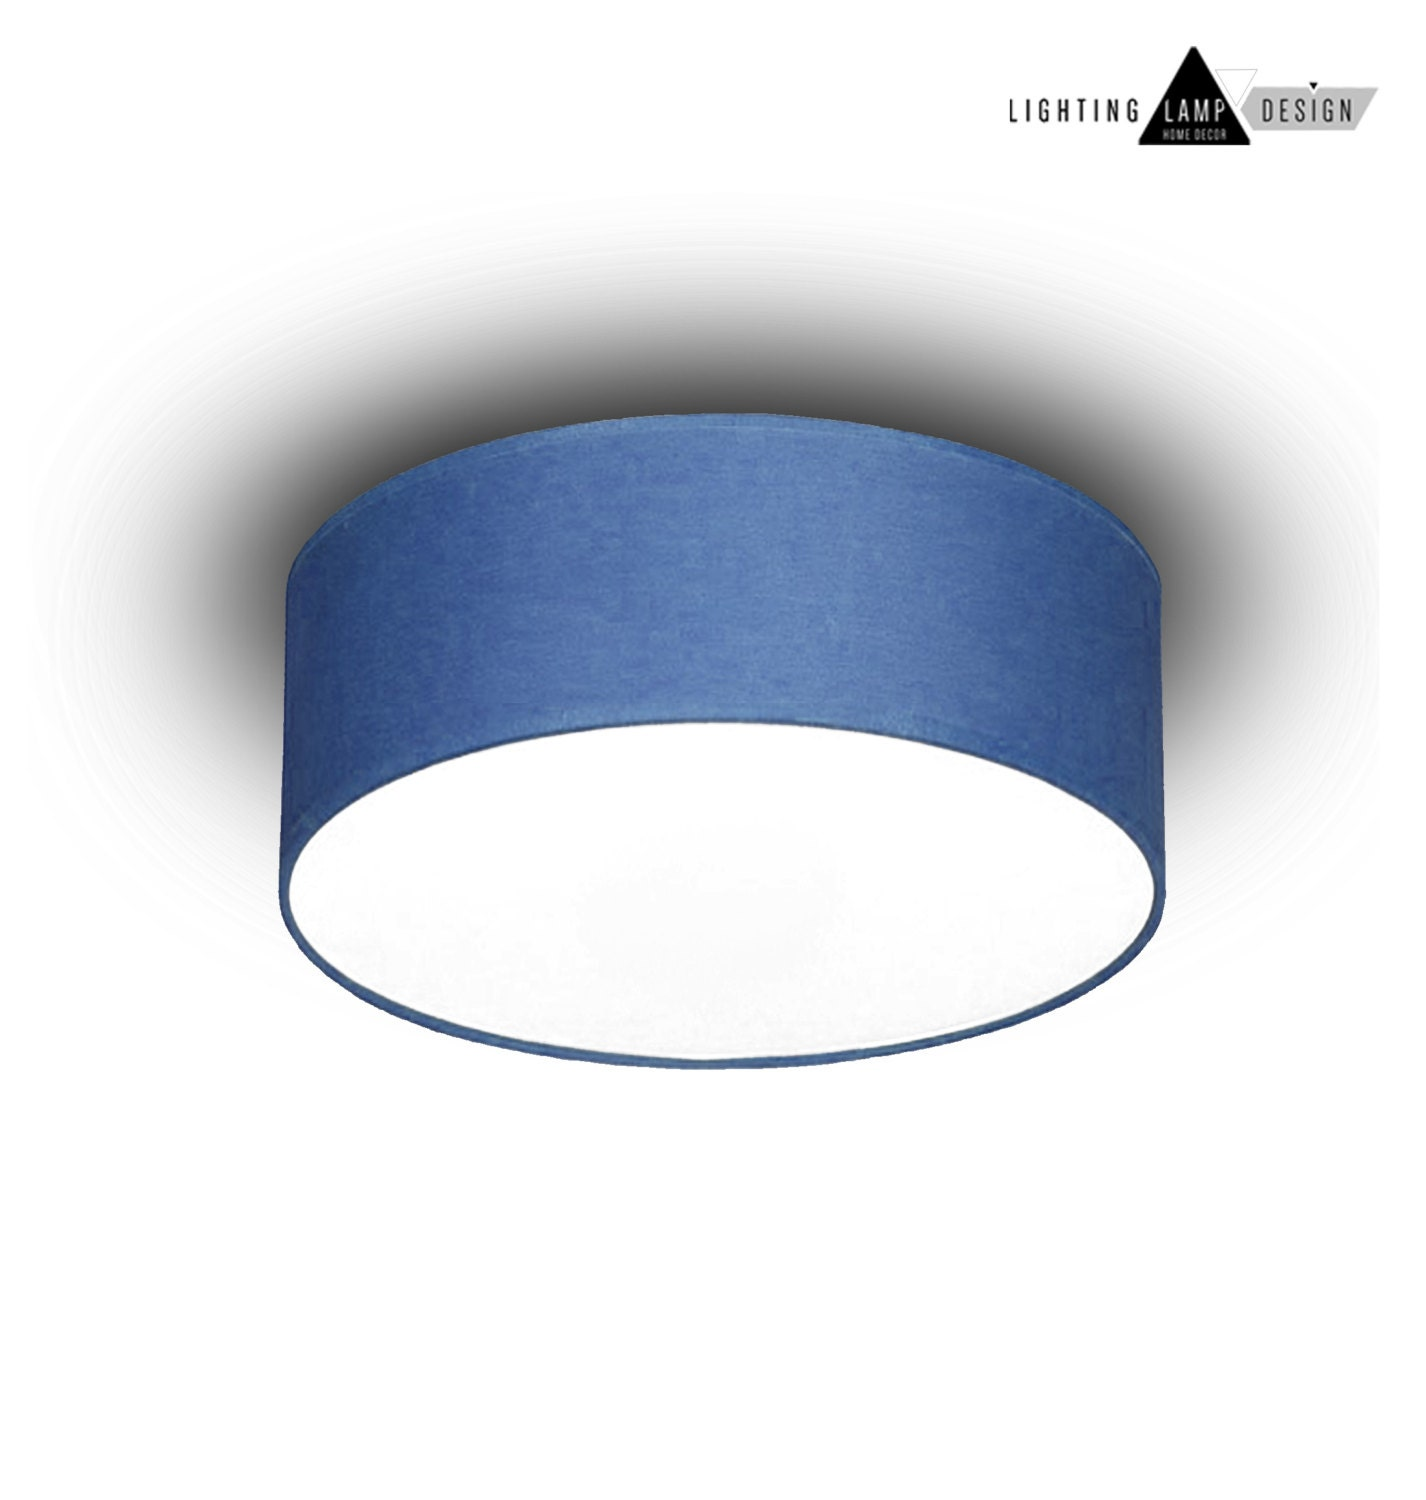 Blue flush mount ceiling ceiling lamp shade blue kids light blue flush mount ceiling ceiling lamp shade blue kids light ceiling lamp shade plafond lampshade flush mounted ceiling fixture aloadofball Images